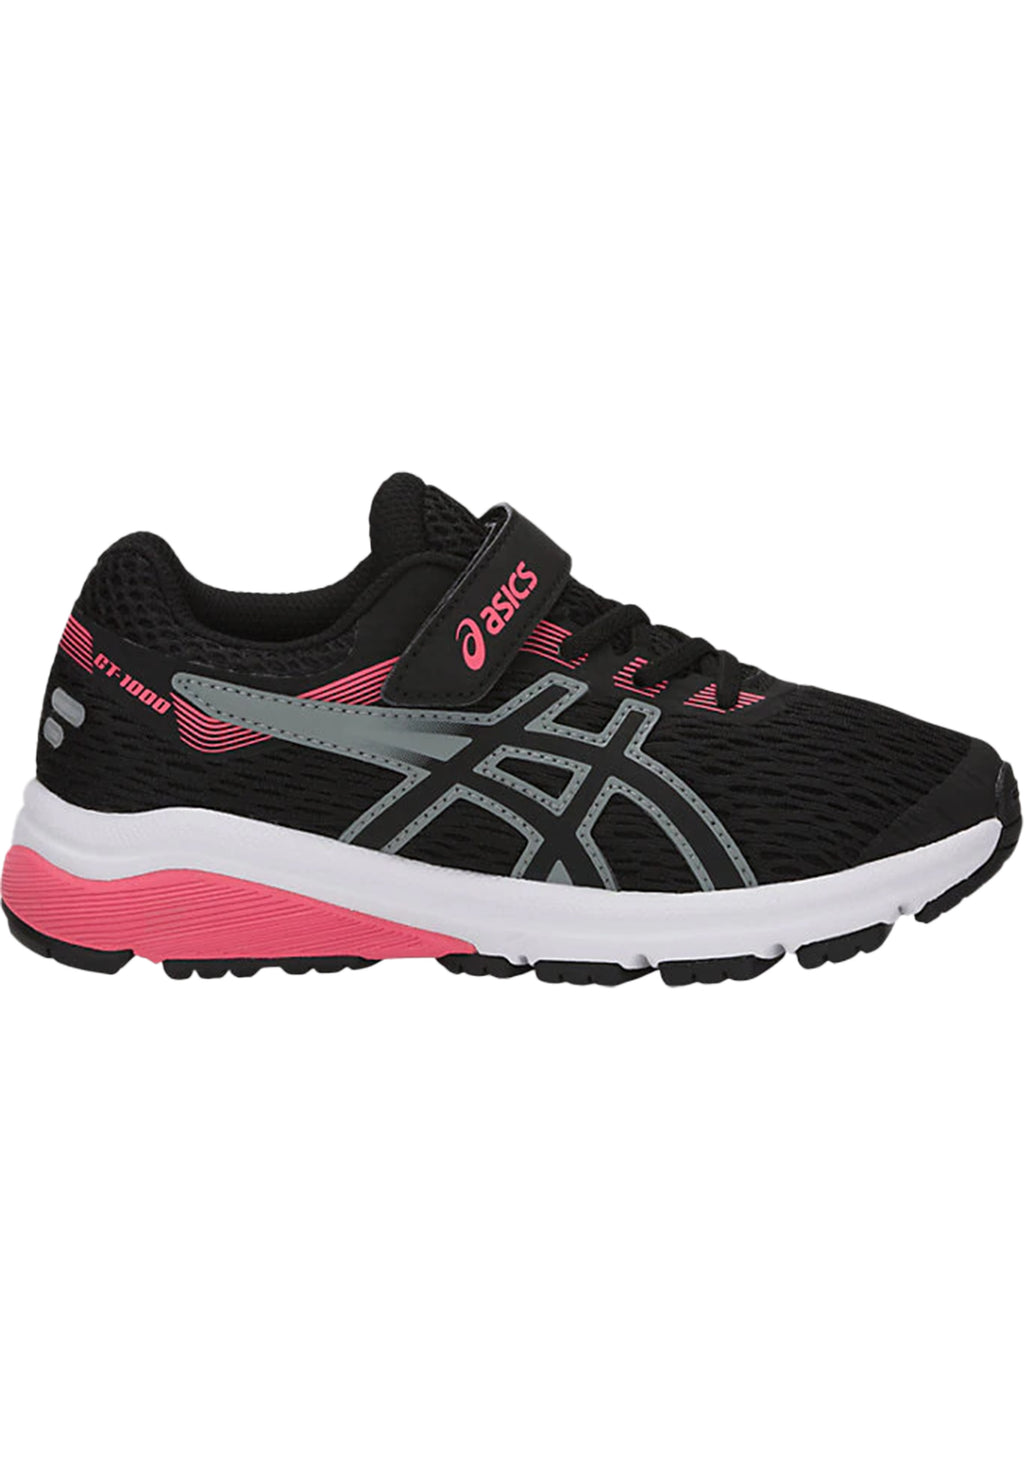 ASICS GT 1000 7 PS JUNIOR WITH FREE DRINK BOTTLE <br> 1014A006 004